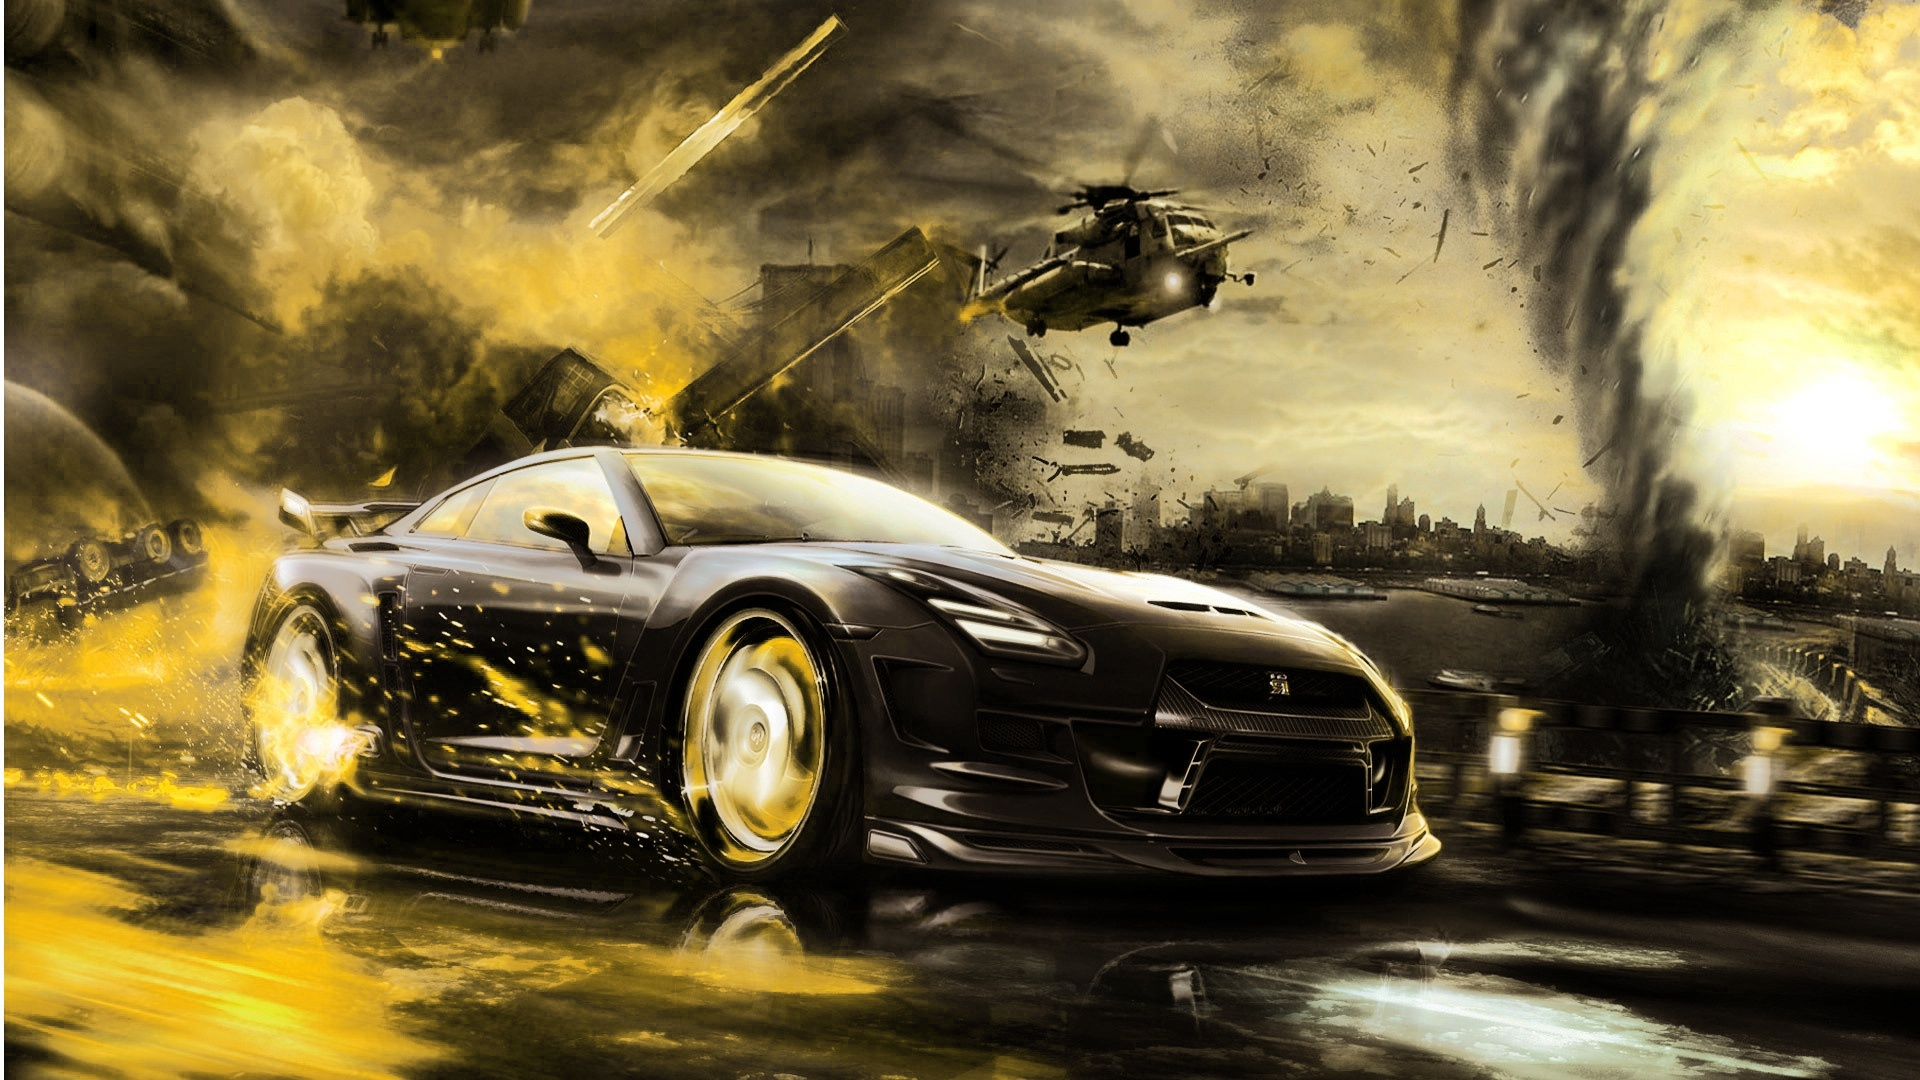 Car hd Wallpapers 1080p Awesome Collection Unique HD Wallpapers 1920x1080